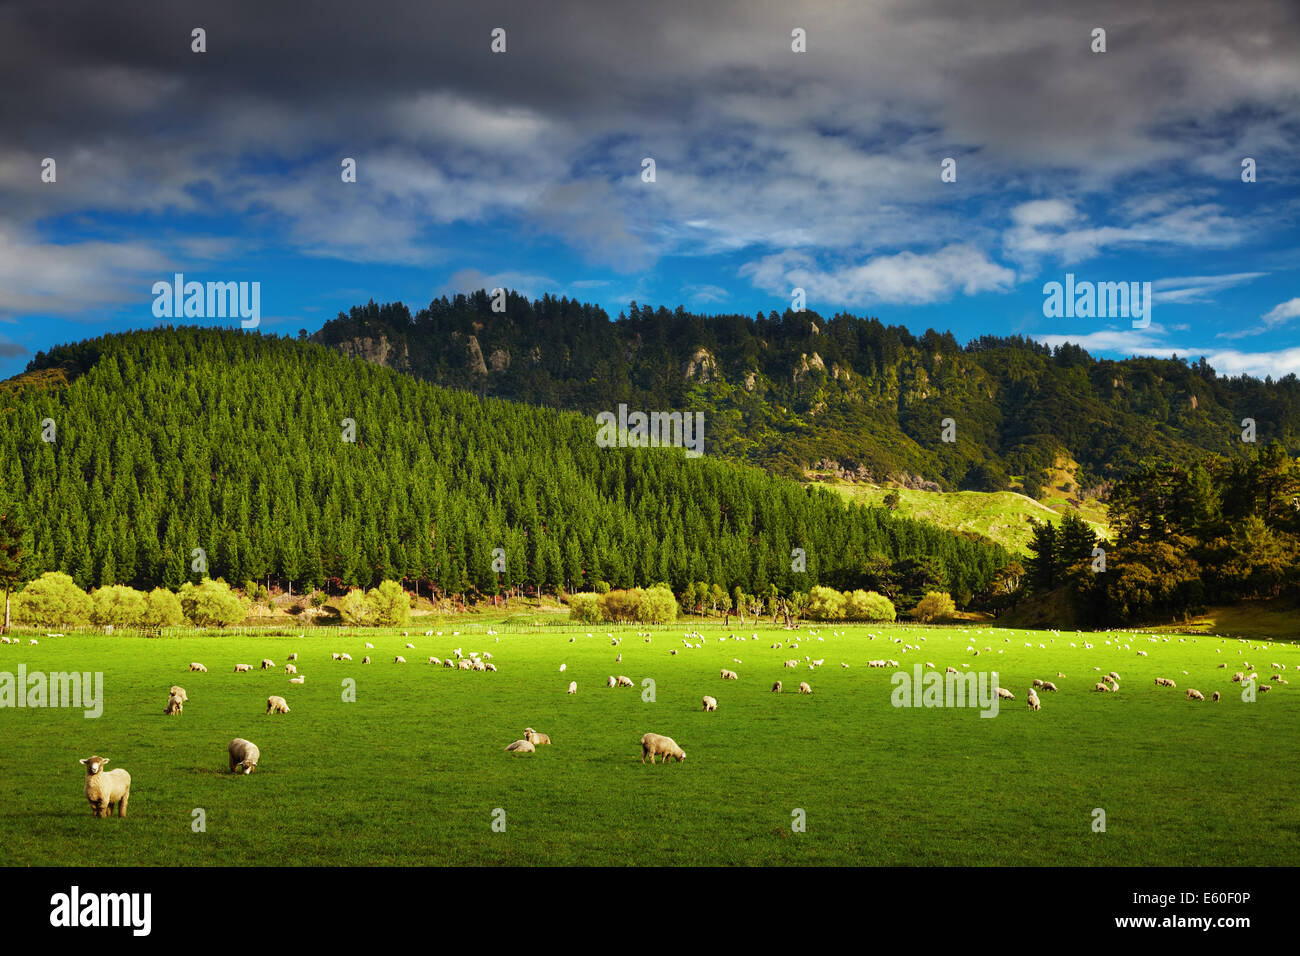 Landscape with forest and grazing sheep, North Island, New Zealand - Stock Image